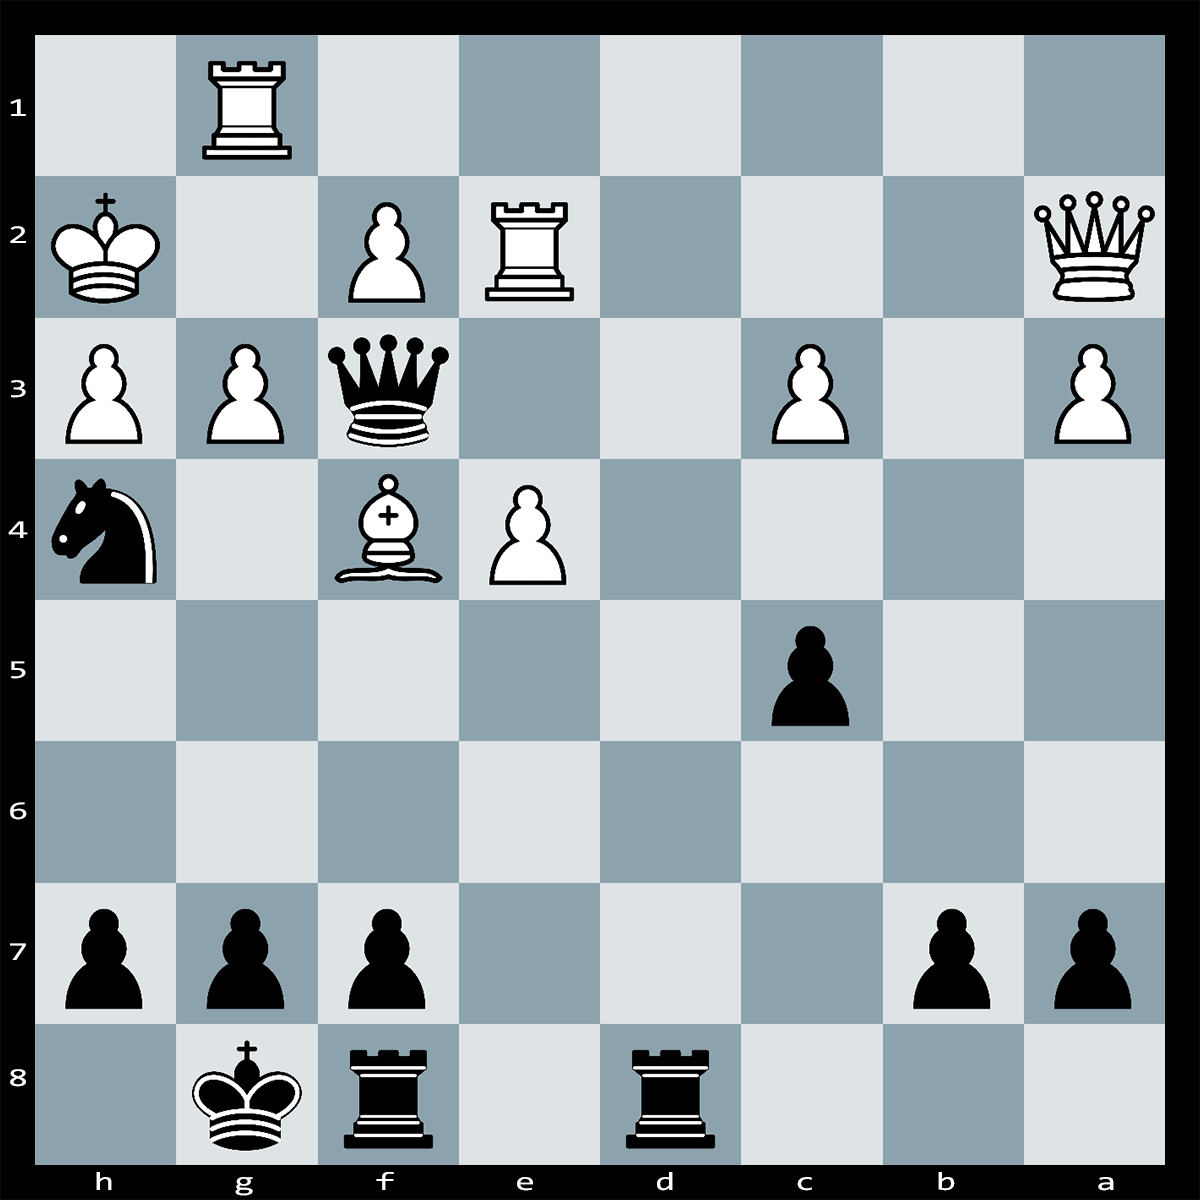 Mate in Five, Black to Play - Chess Puzzle #84